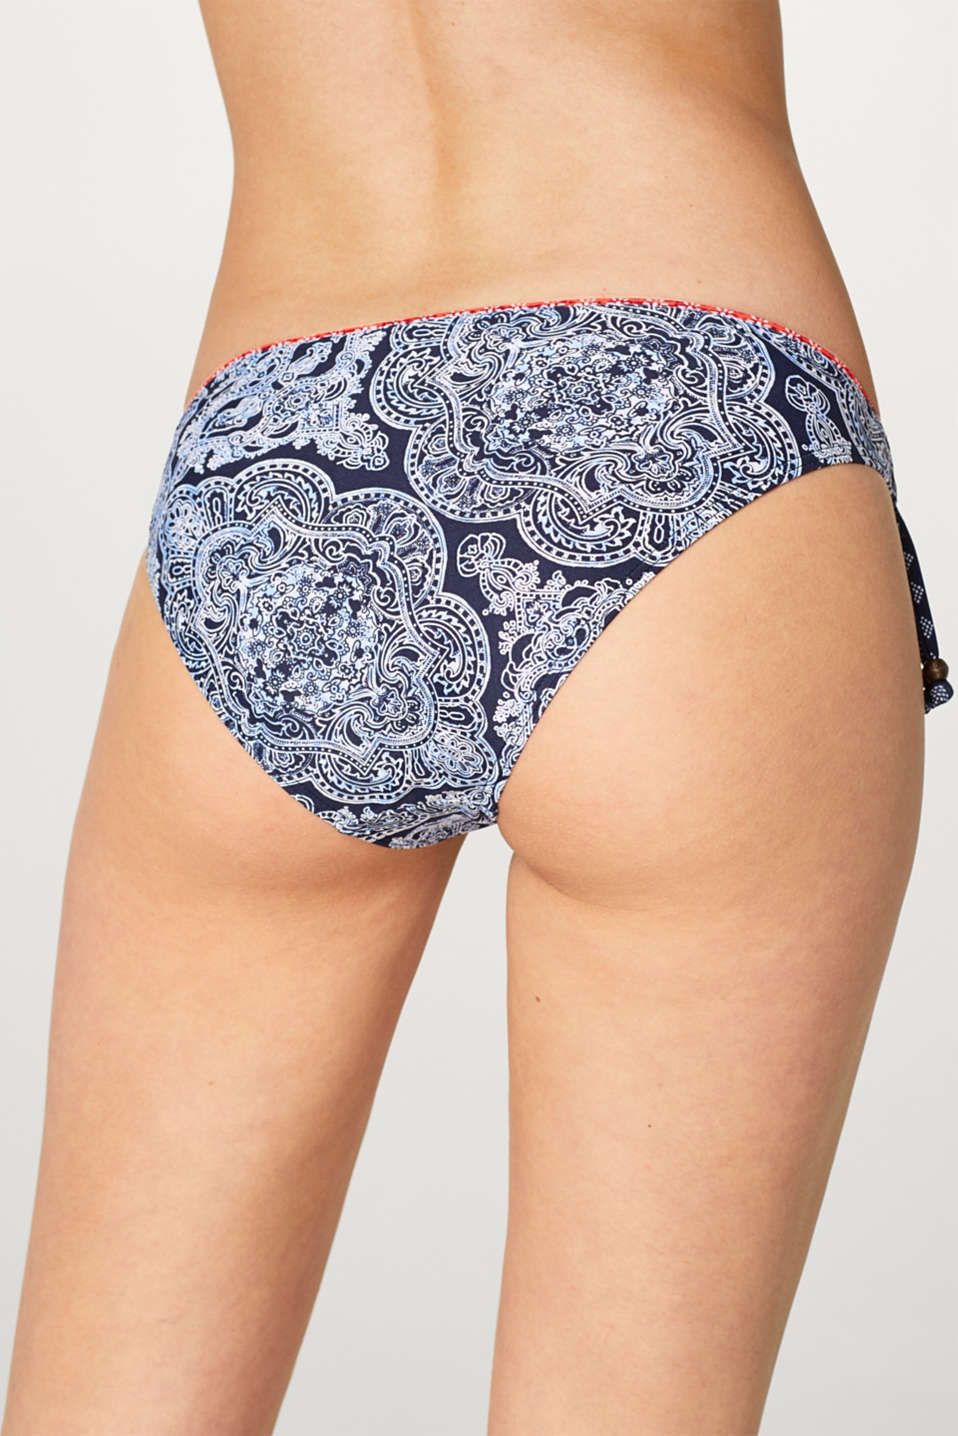 Mini briefs in a paisley design